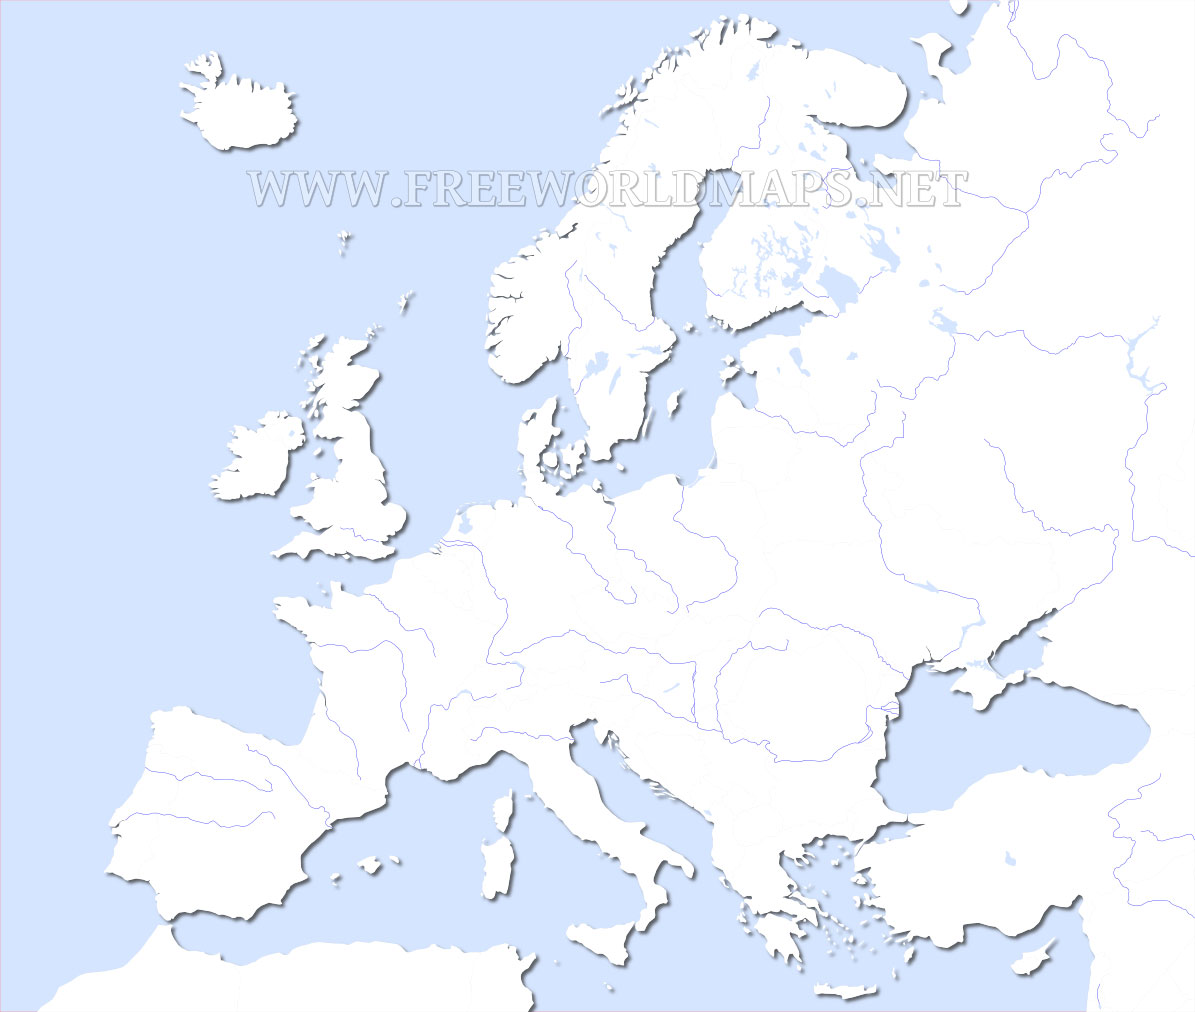 Europe Physical Map Freeworldmapsnet